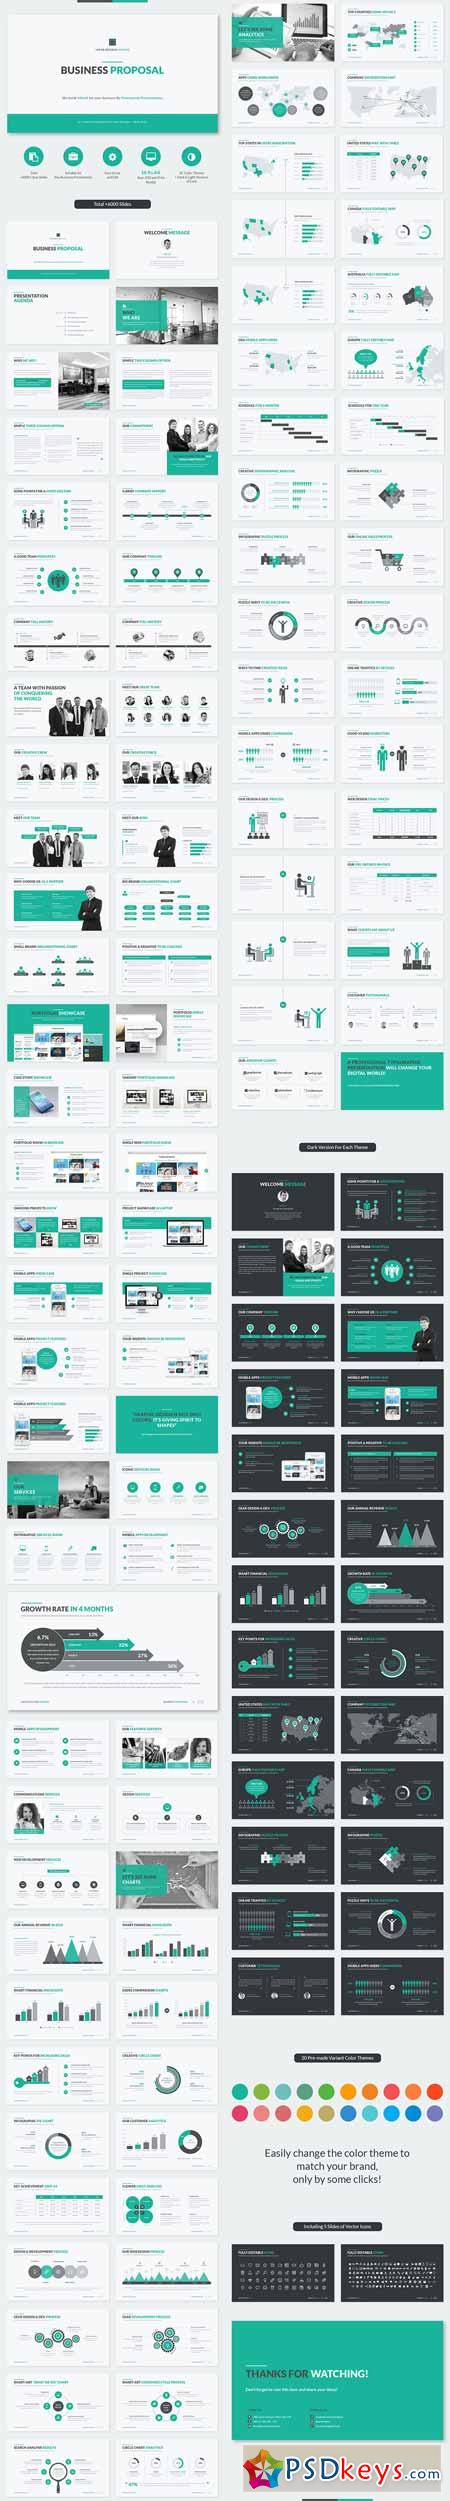 Business proposal powerpoint template 11833931 free for Powerpoint templates torrents